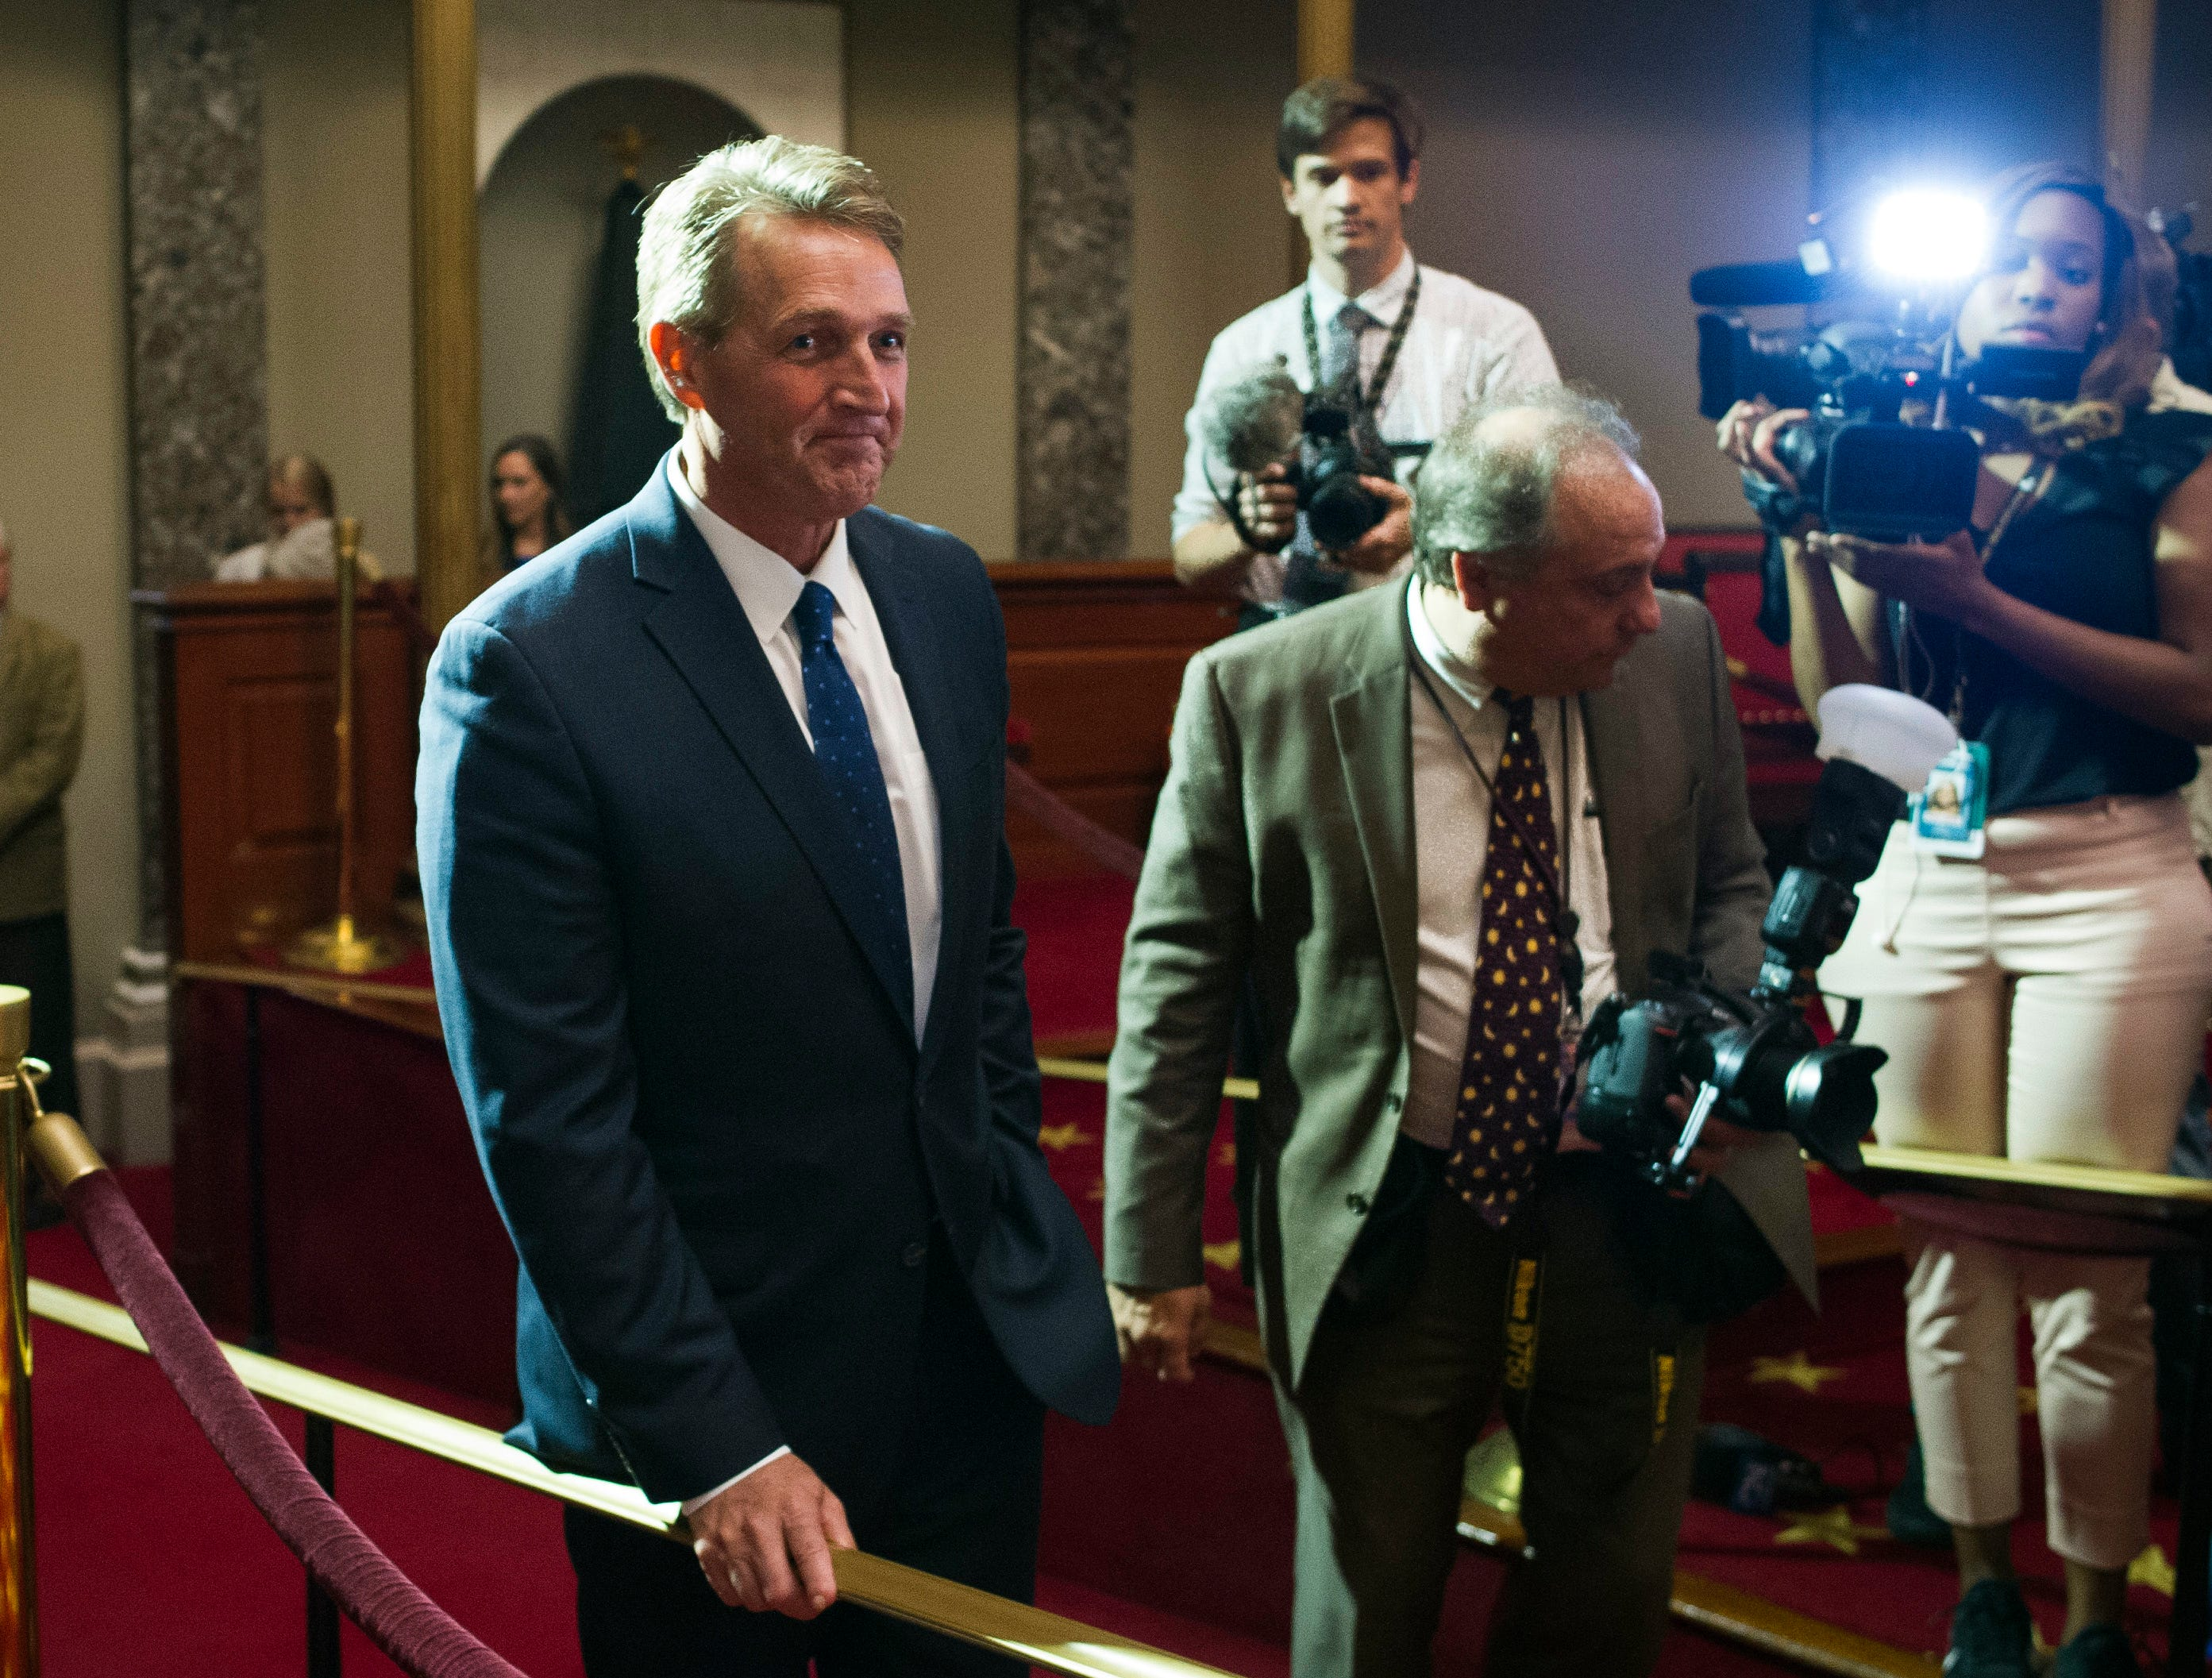 Sen. Jeff Flake, R-Ariz., arrives in the Old Senate Chamber to watch Vice President Mike Pence administer the Oath of Office to Sen. Jon Kyl, R-Ariz., during a ceremonial swearing-in at the Old Senate Chamber on Capitol Hill, in Washington, on Sept. 5, 2018.